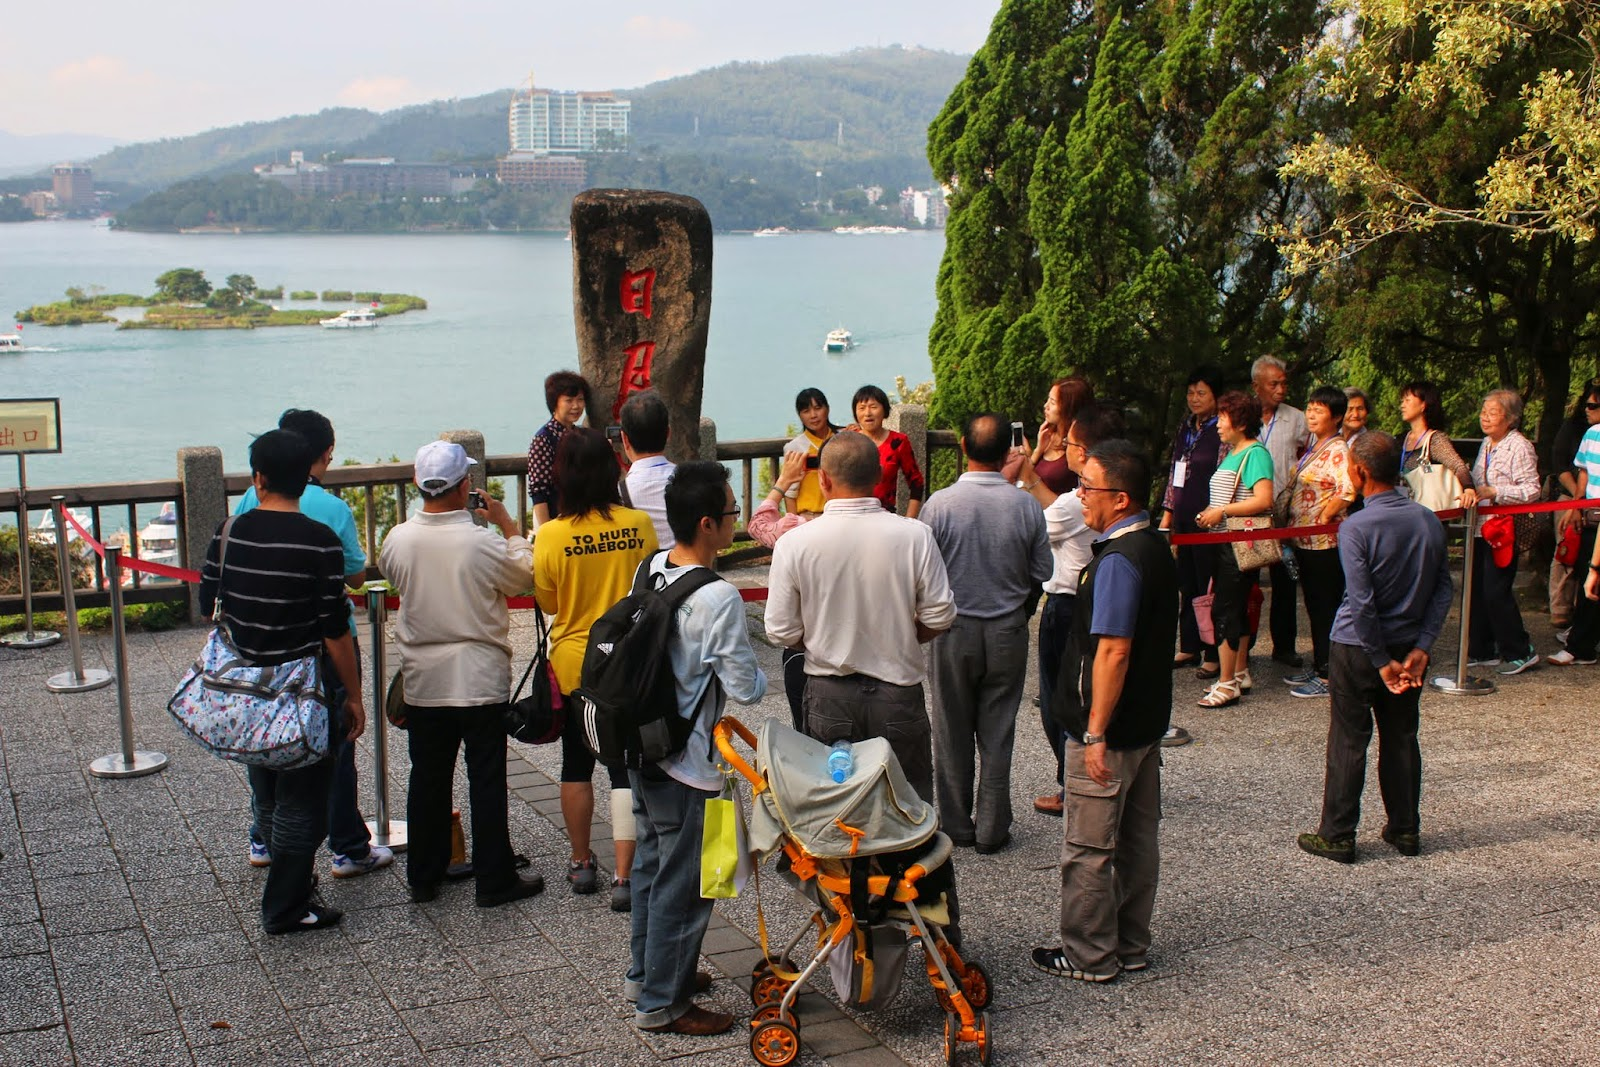 Visitors queue for their photo taking with the stone sign of Sun Moon Lake at Syuanguang Temple in Taiwan